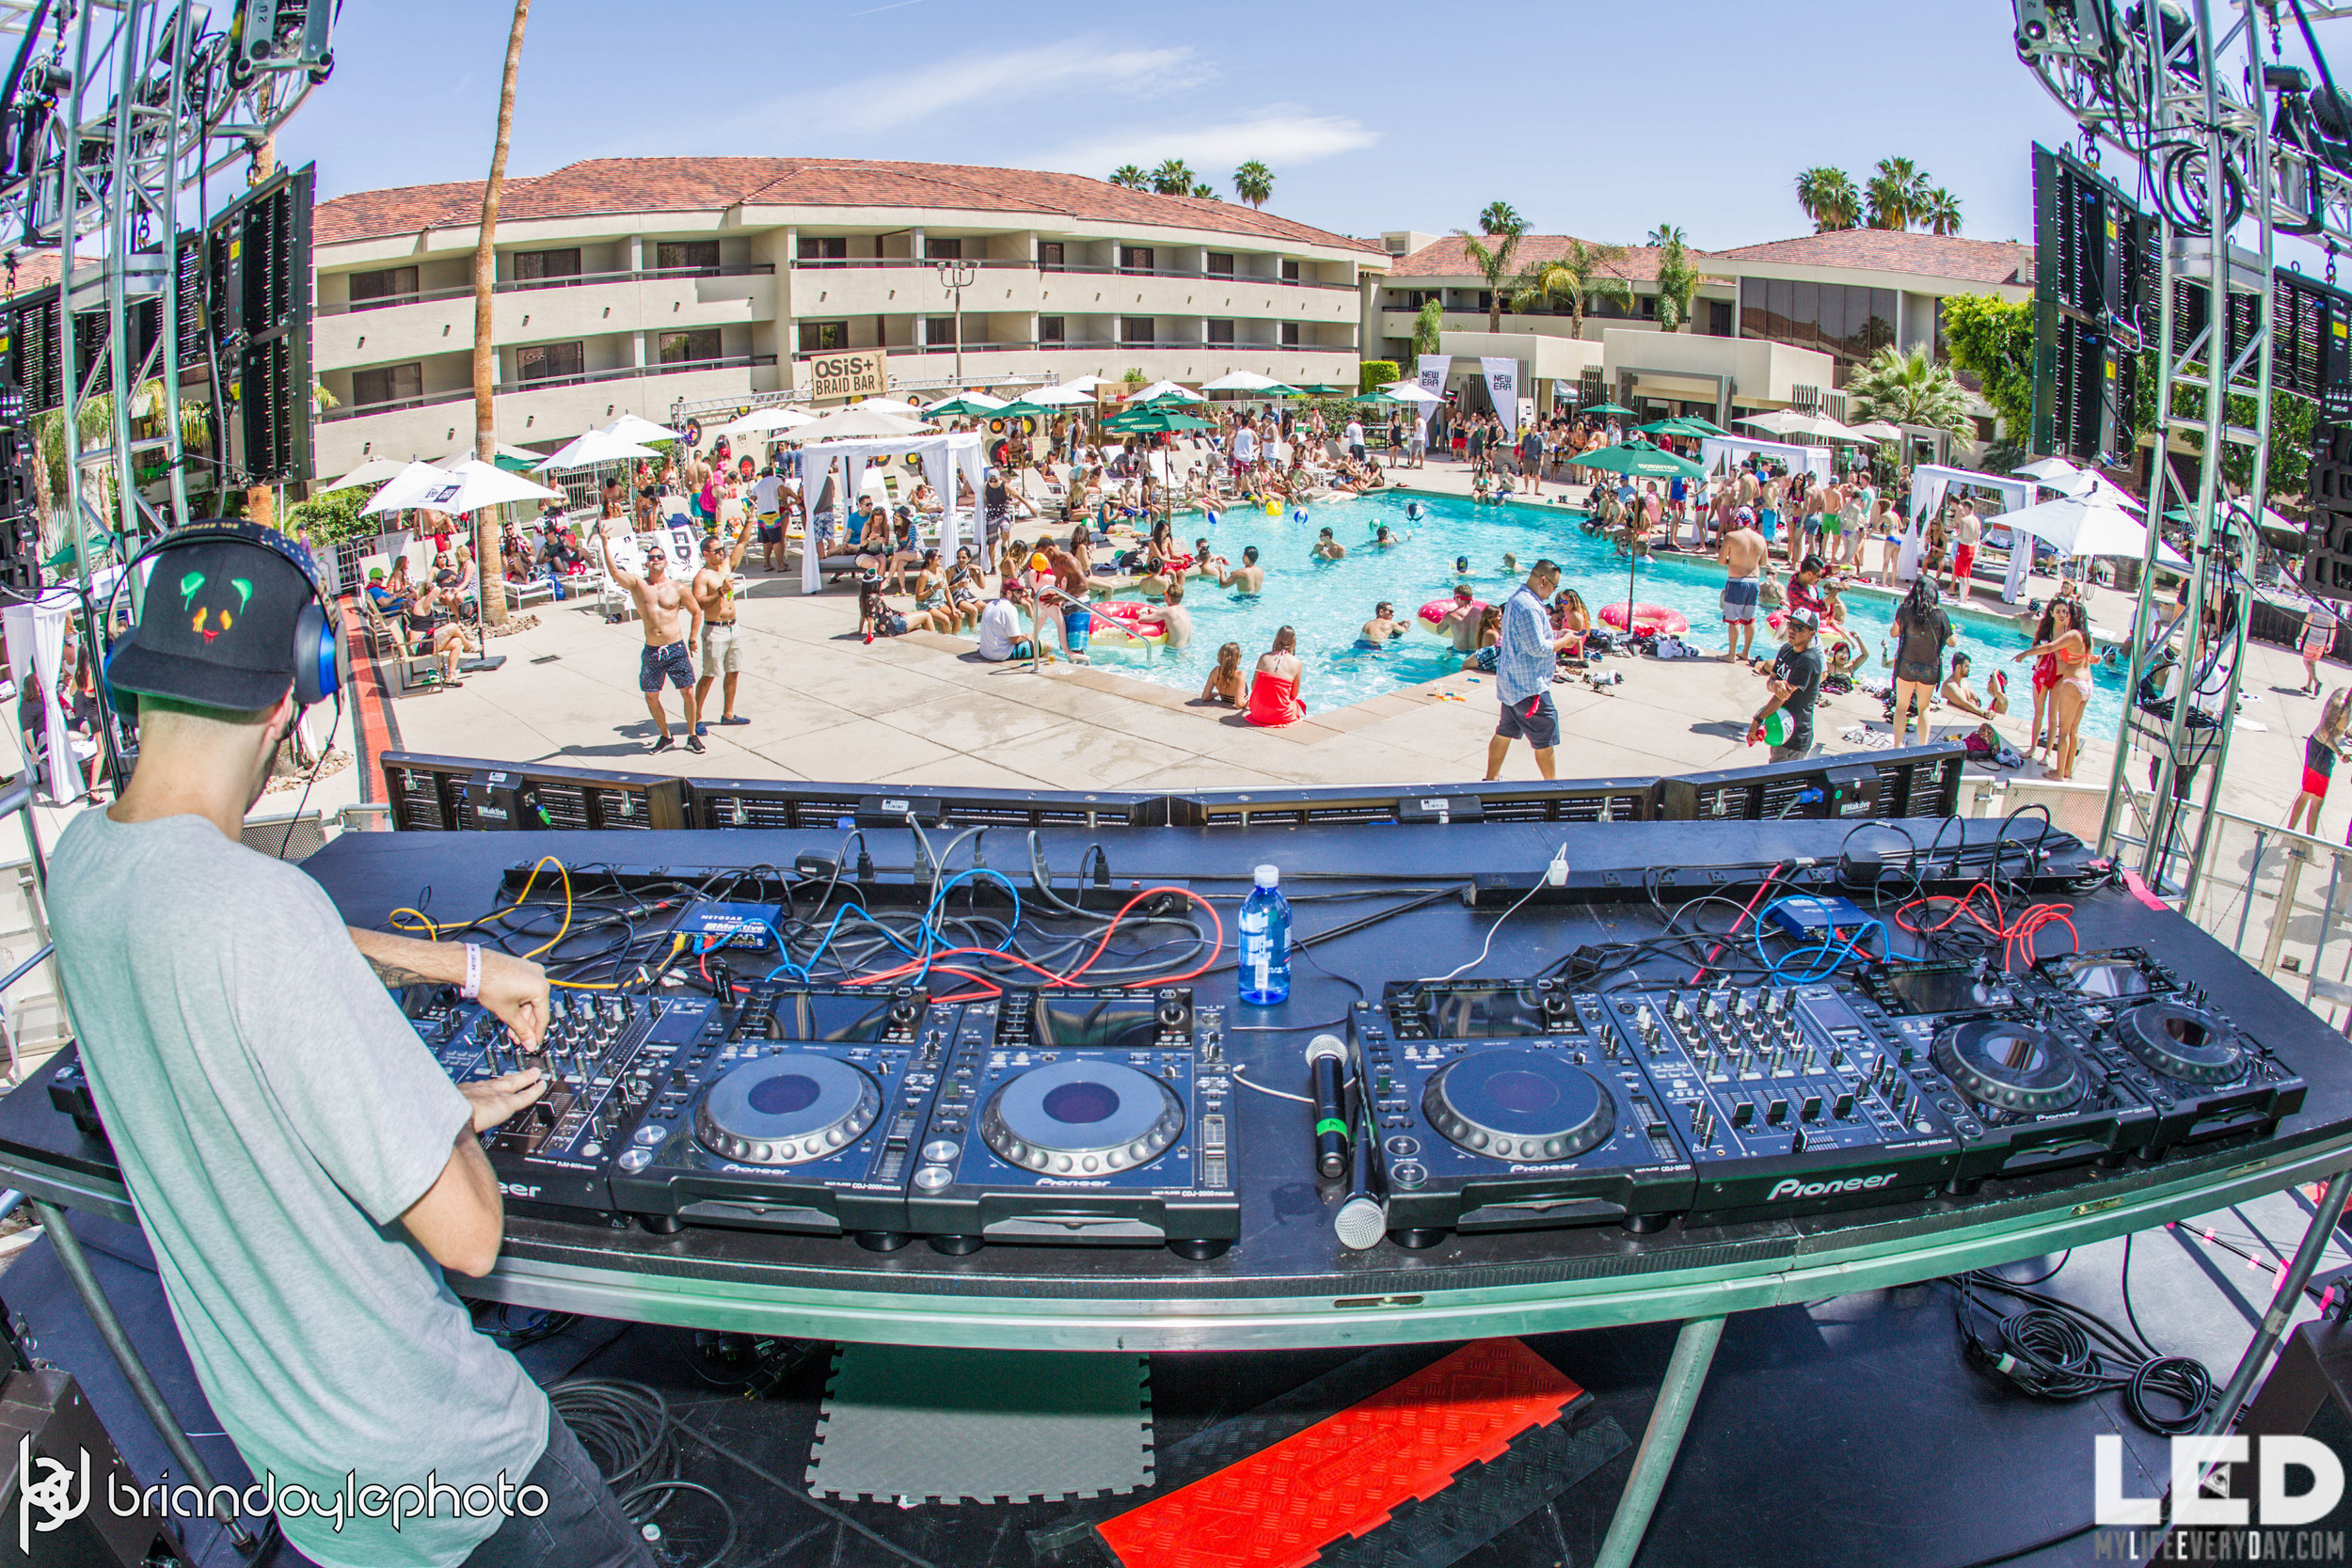 LED Day Club Day 2  Deorro and Chris 04.10.2015-13.jpg